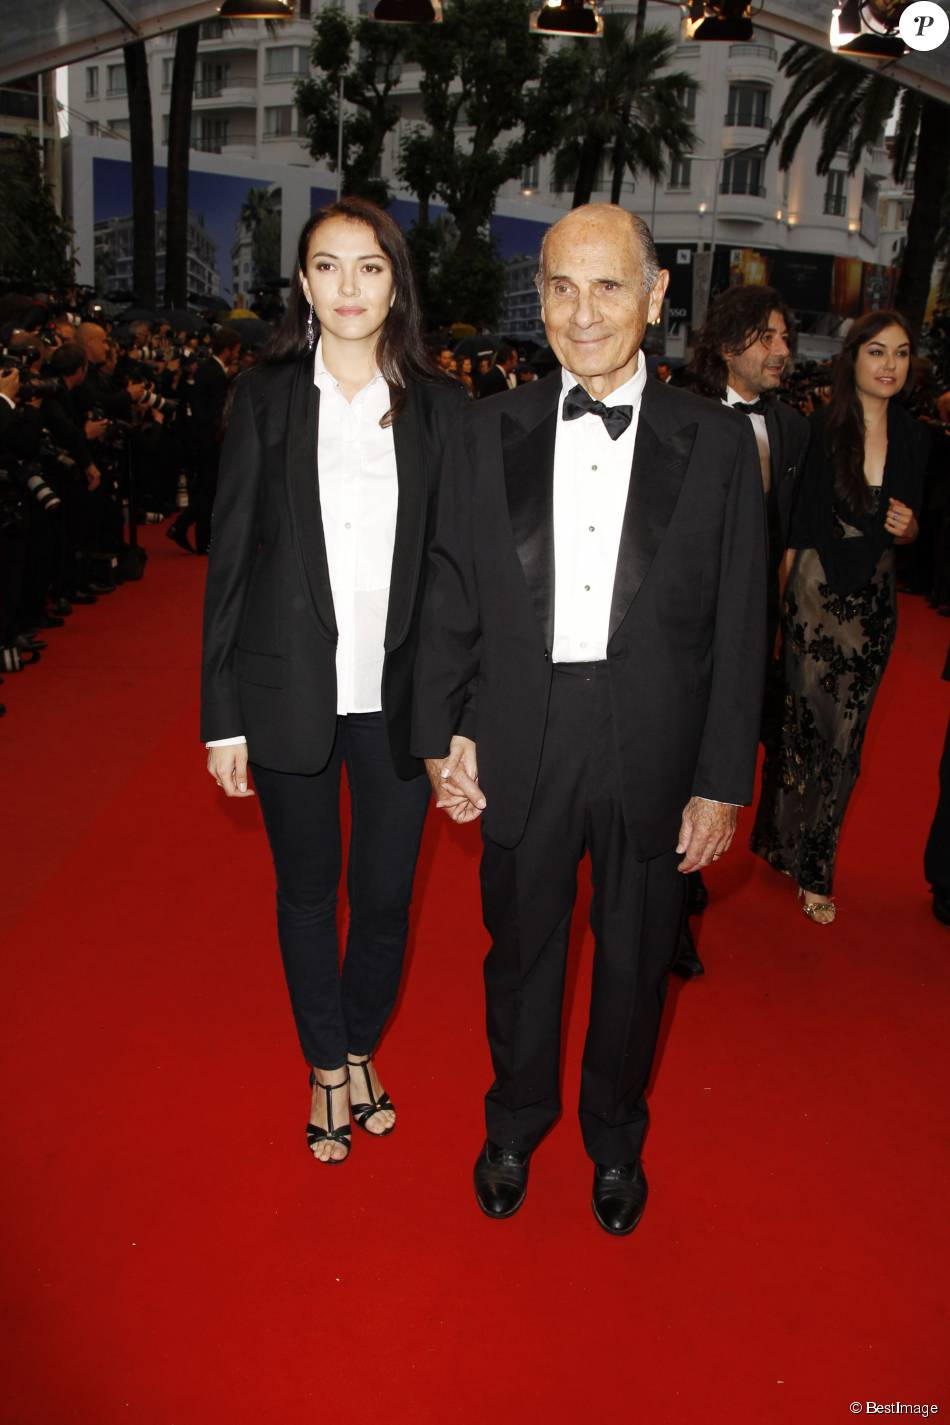 Guy Marchand Et Sa Femme : marchand, femme, Marchand, Femme, Adelina, Festival, Cannes, 2012., Purepeople